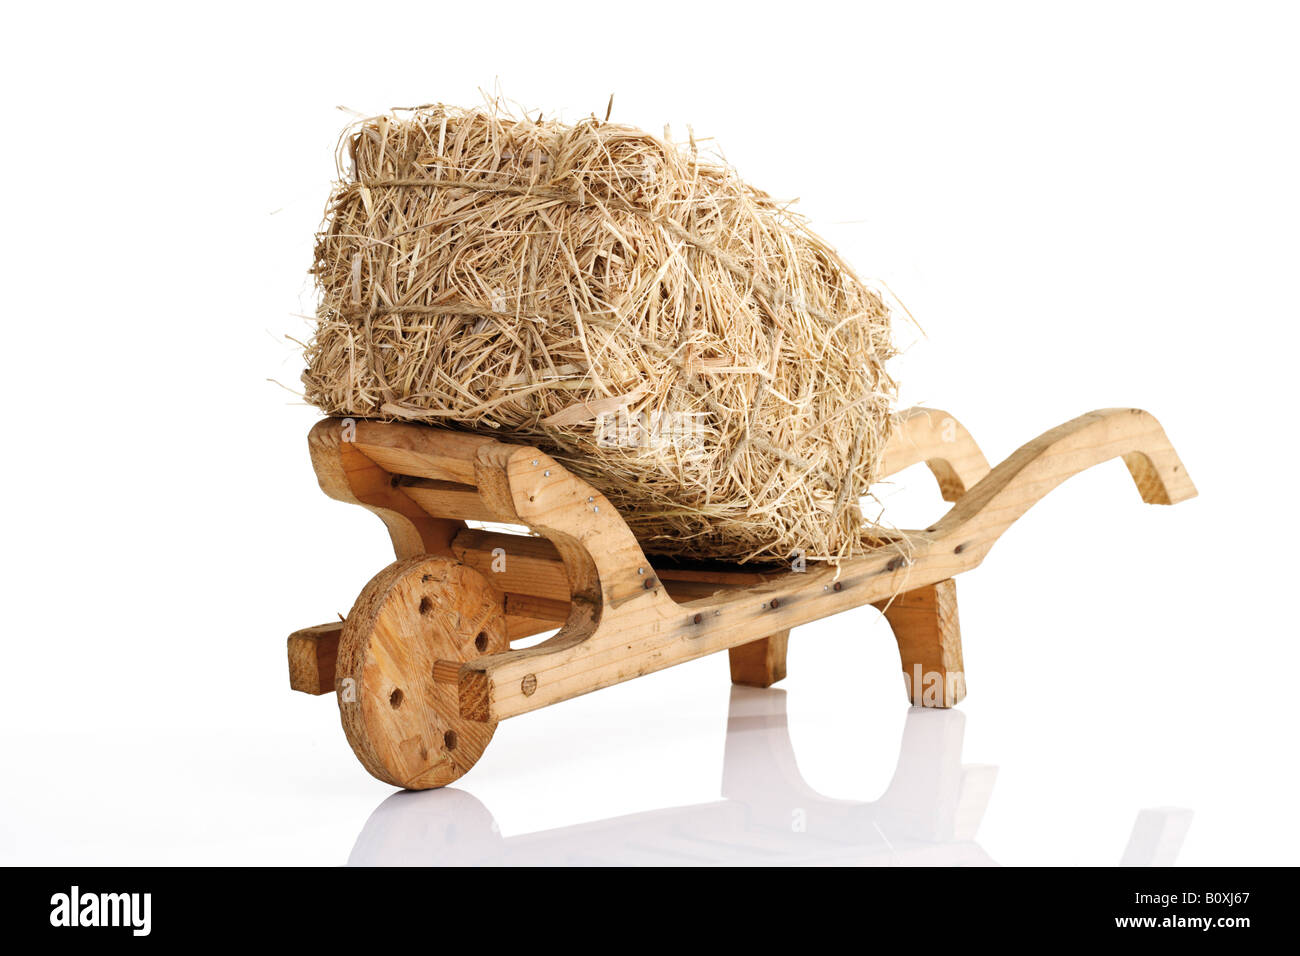 Bale Of Hay Cut Out Stock Photos & Bale Of Hay Cut Out Stock Images